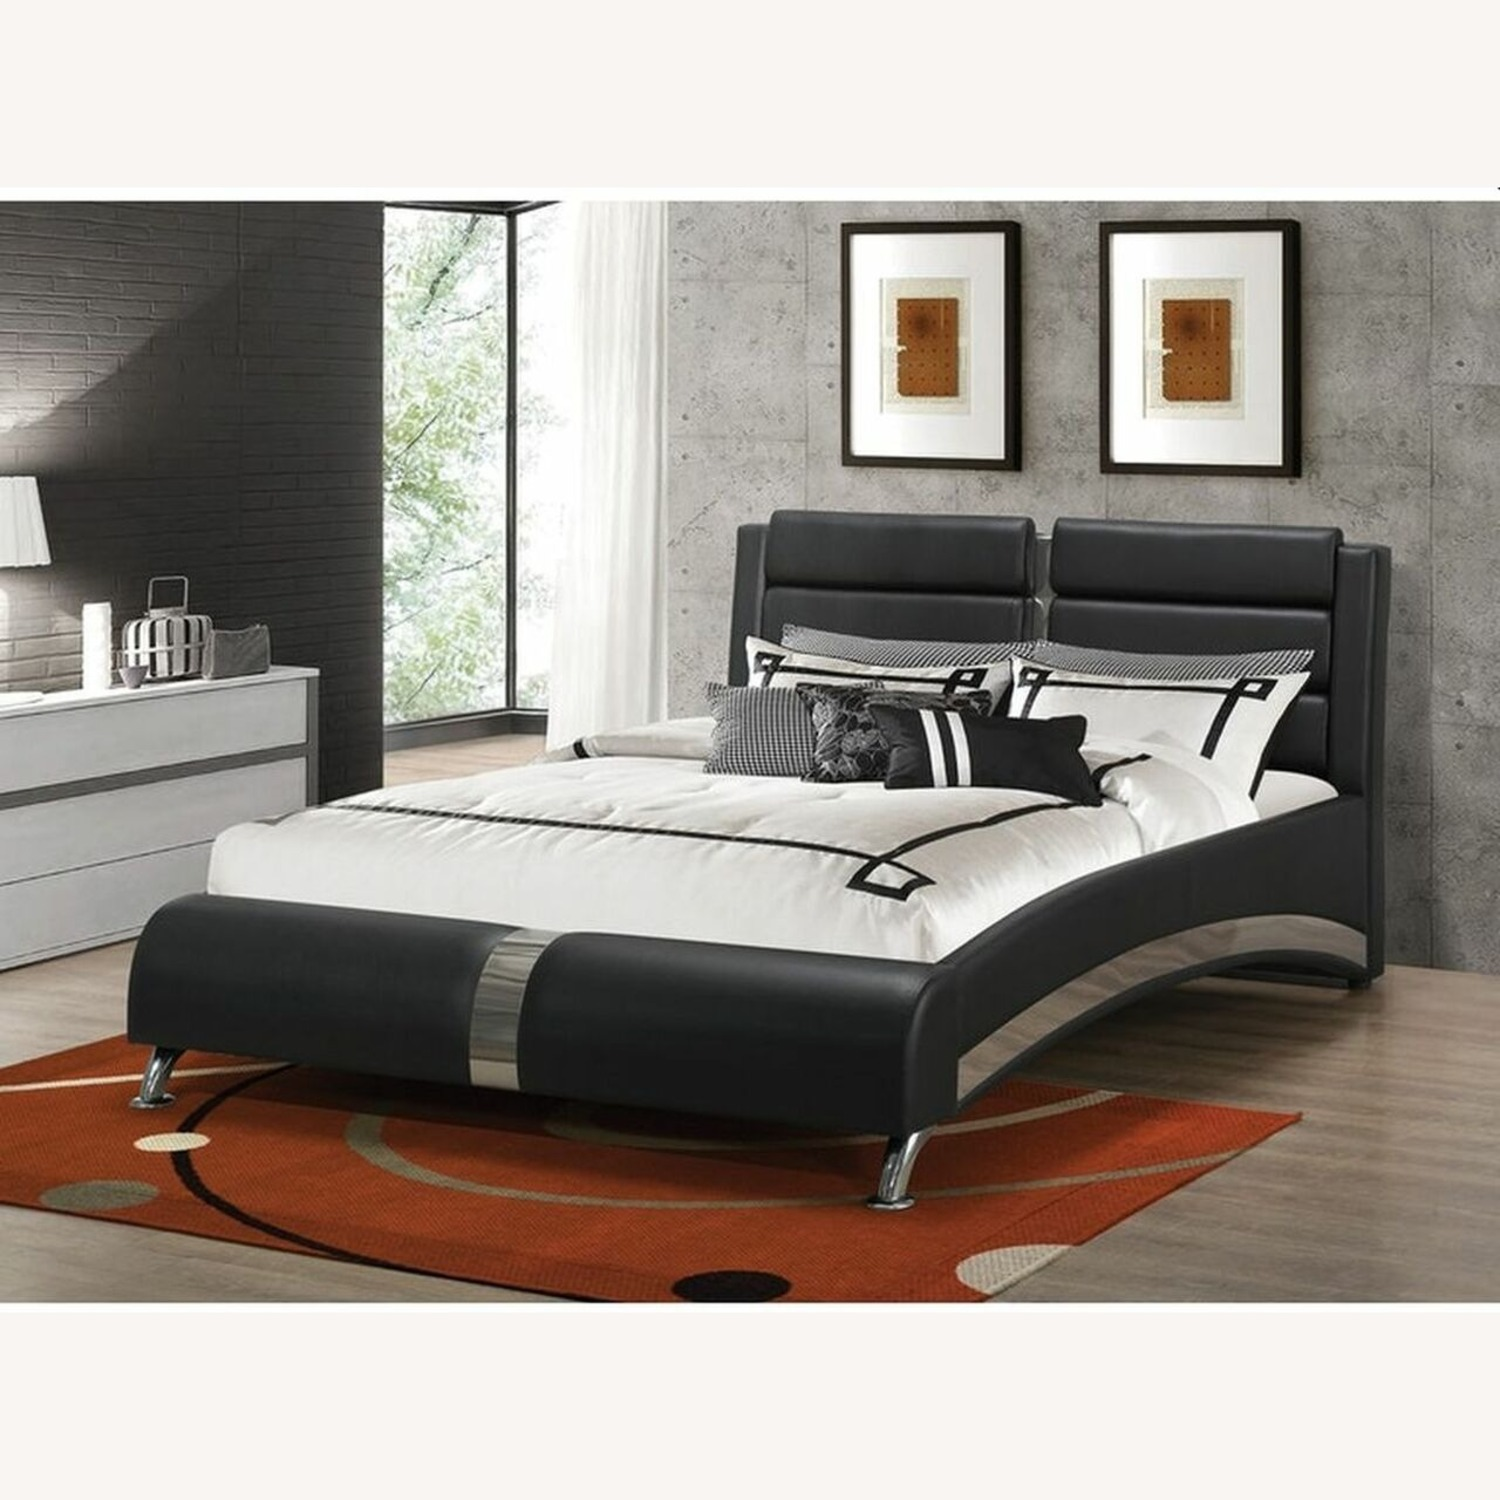 King Bed In Black Leatherette W/ Channel Details - image-2